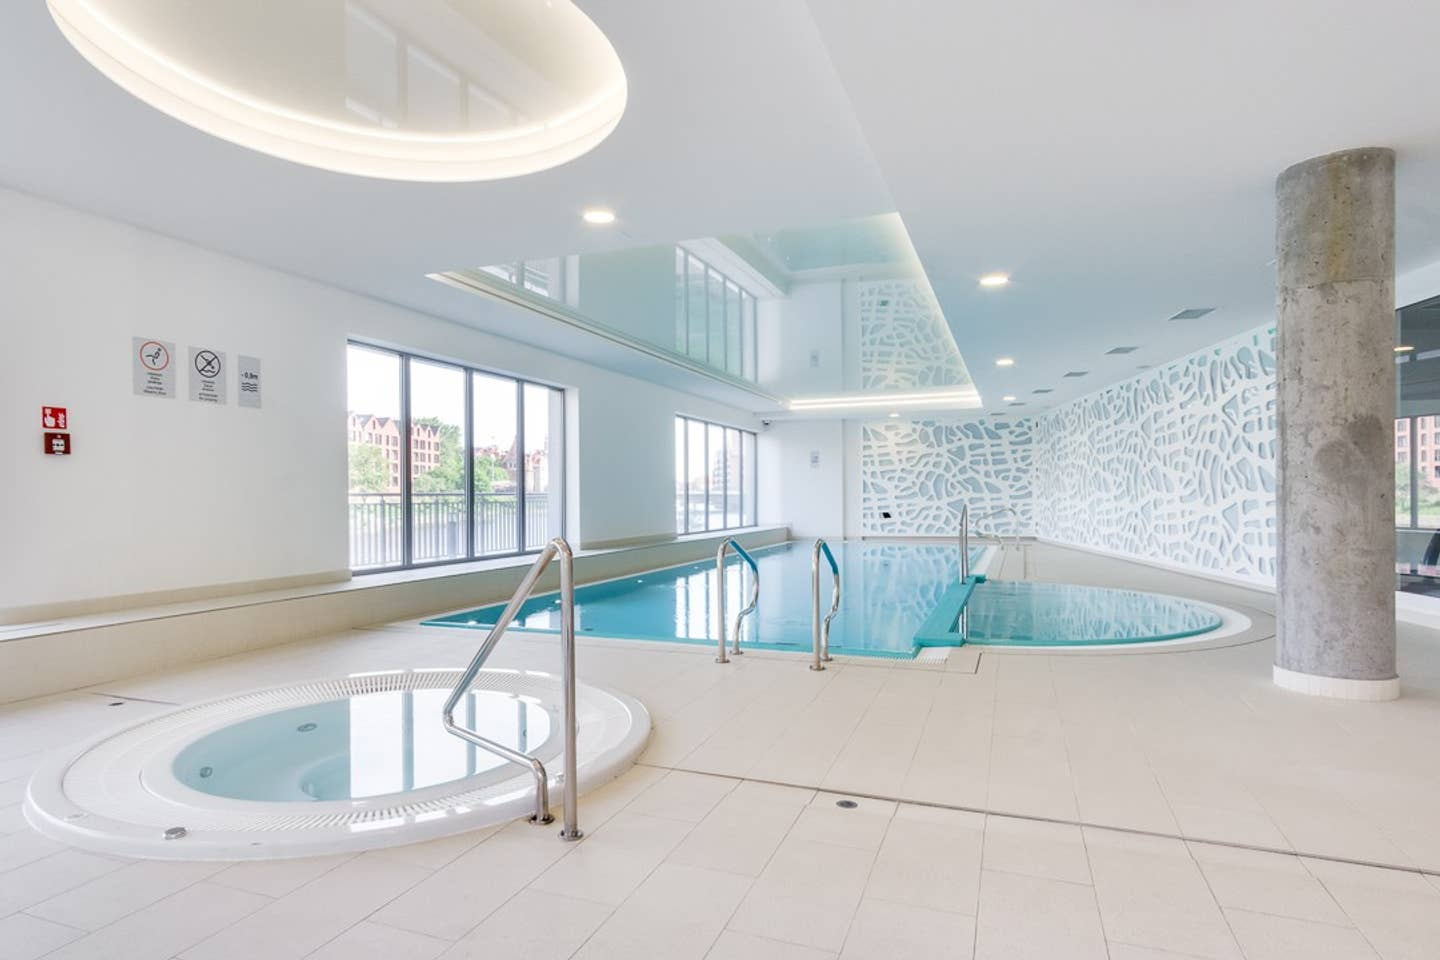 Apartment Waterlane swimming pool  sauna  fitness included in the offer photo 19148562